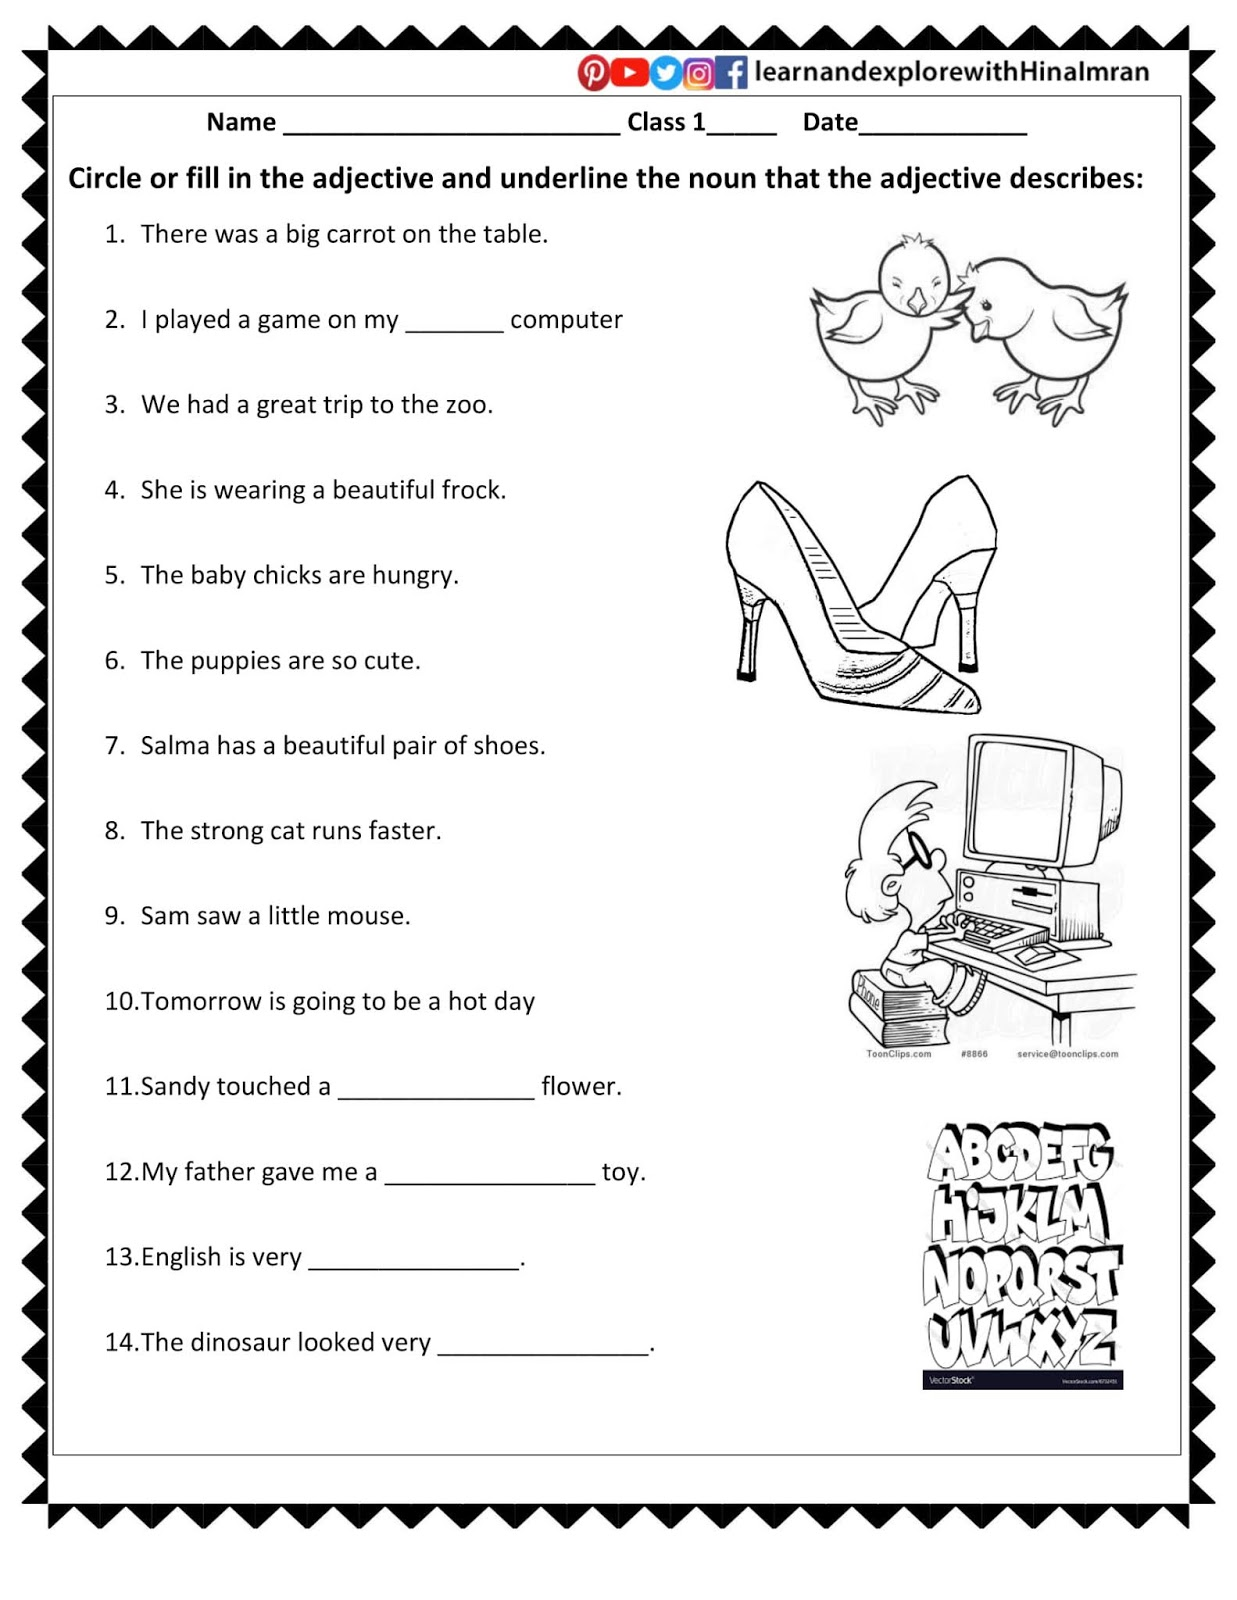 medium resolution of Learn and Explore 360 - Hina Imran: Grade 1 Worksheets